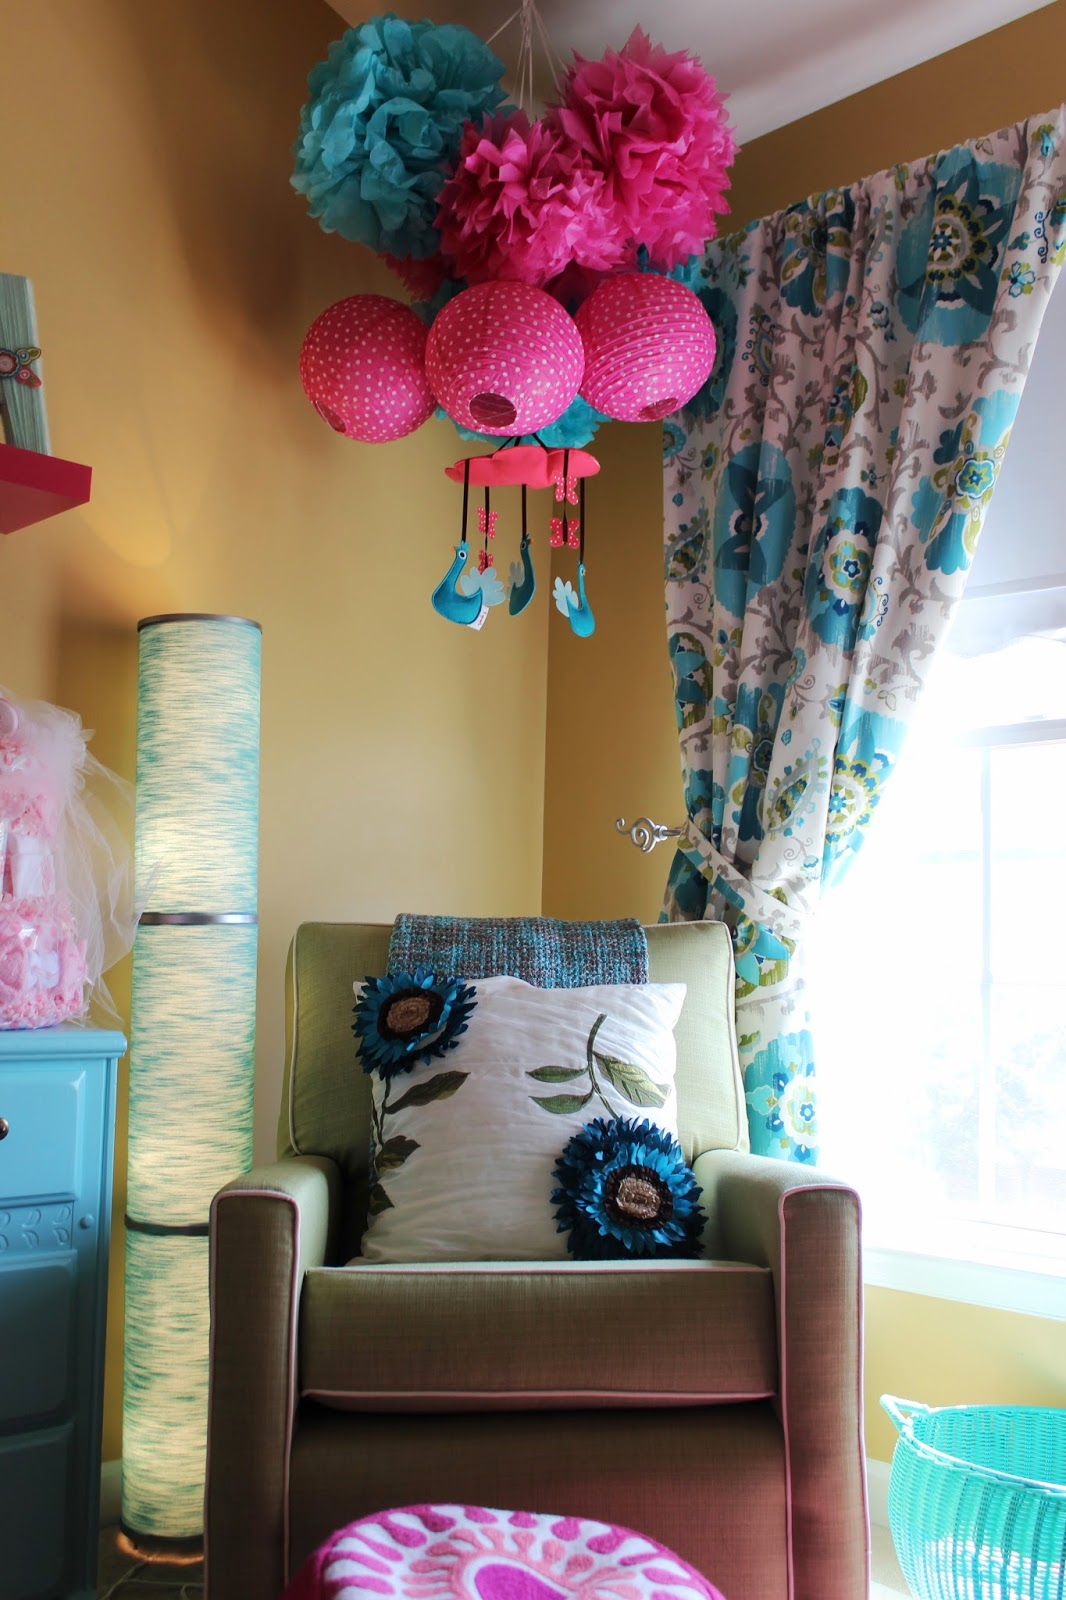 Bliss In Imperfection: A Teal and Pink Nursery For The LIttle Miss #9F2C60